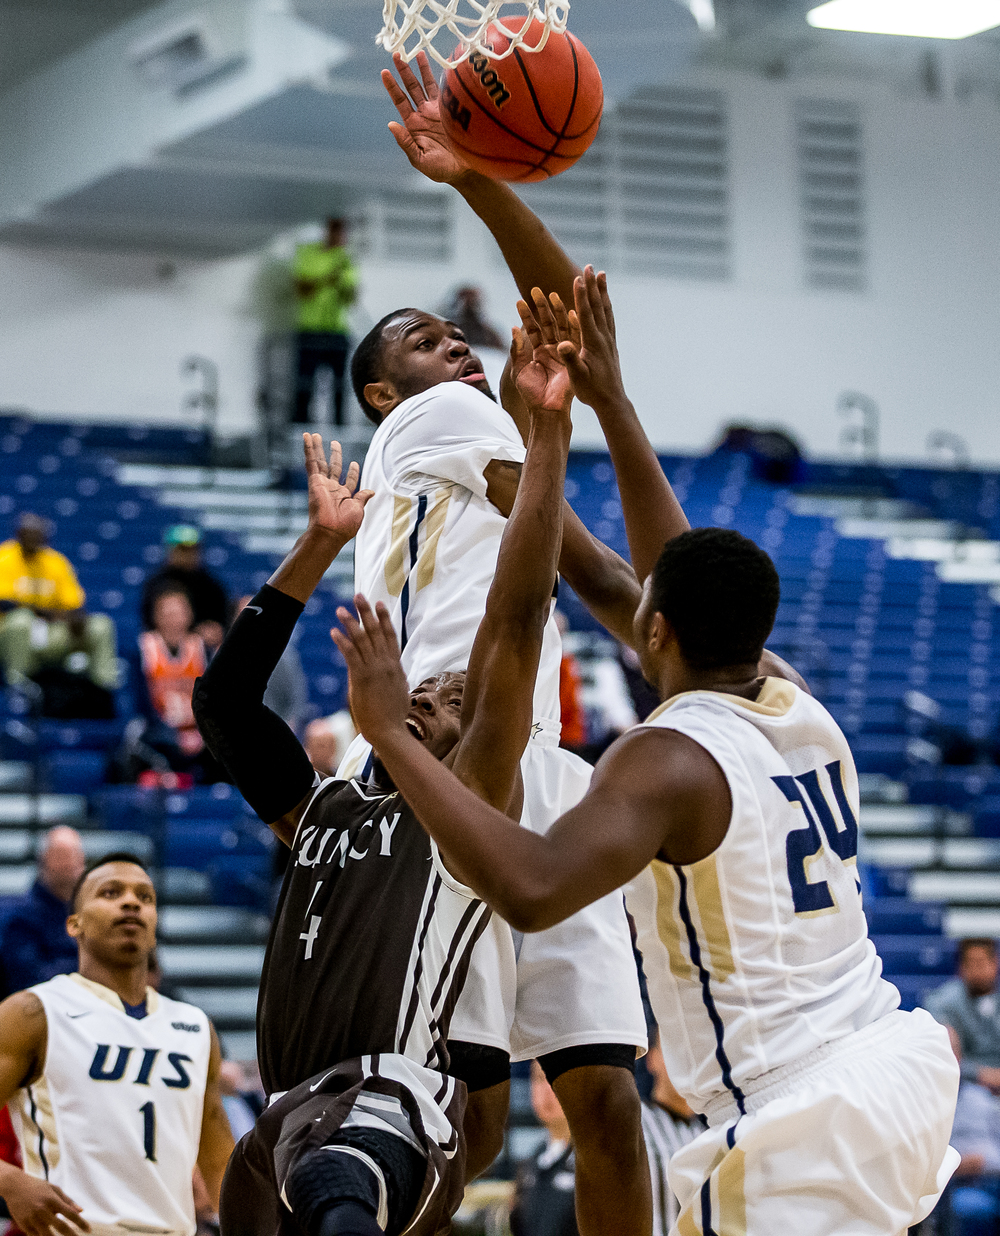 Quincy University's Thomas Jackson (4) draws the foul as he drives into the basket against University of Illinois Springfield's Colin Blaydes (30) in the second half at the UIS Athletic & Recreation Center, Thursday, Jan. 8, 2015, in Springfield, Ill. Justin L. Fowler/The State Journal-Register